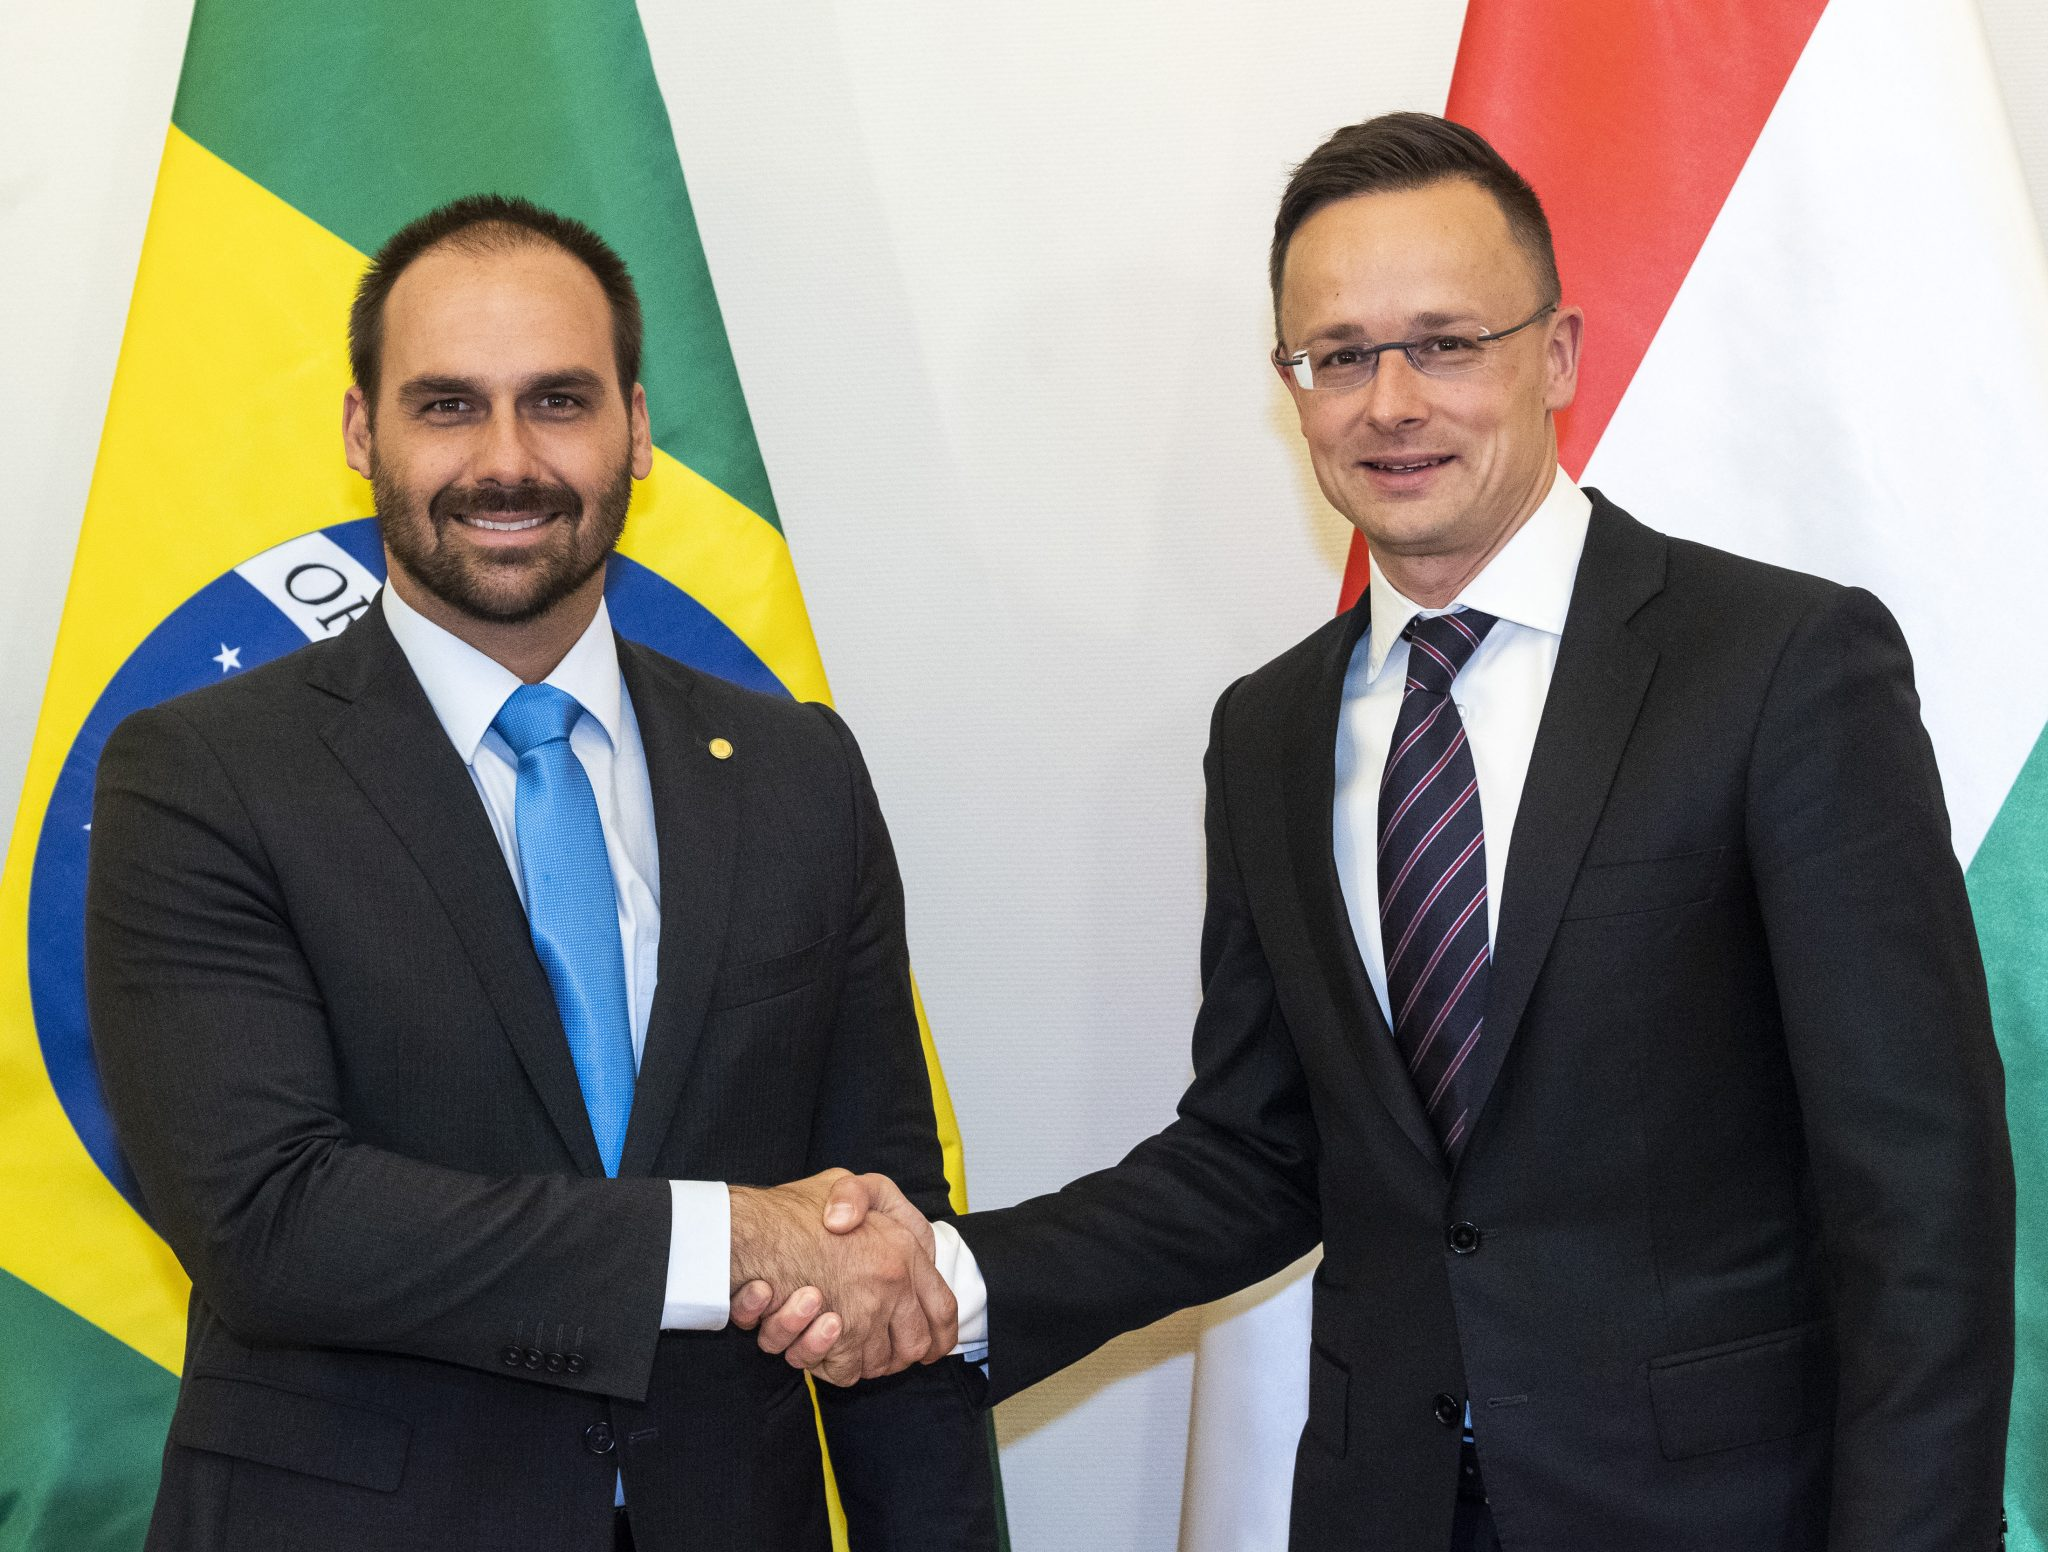 Szijjártó: Hungary and Brazil Share Positions On Key Political and Strategic Issues post's picture